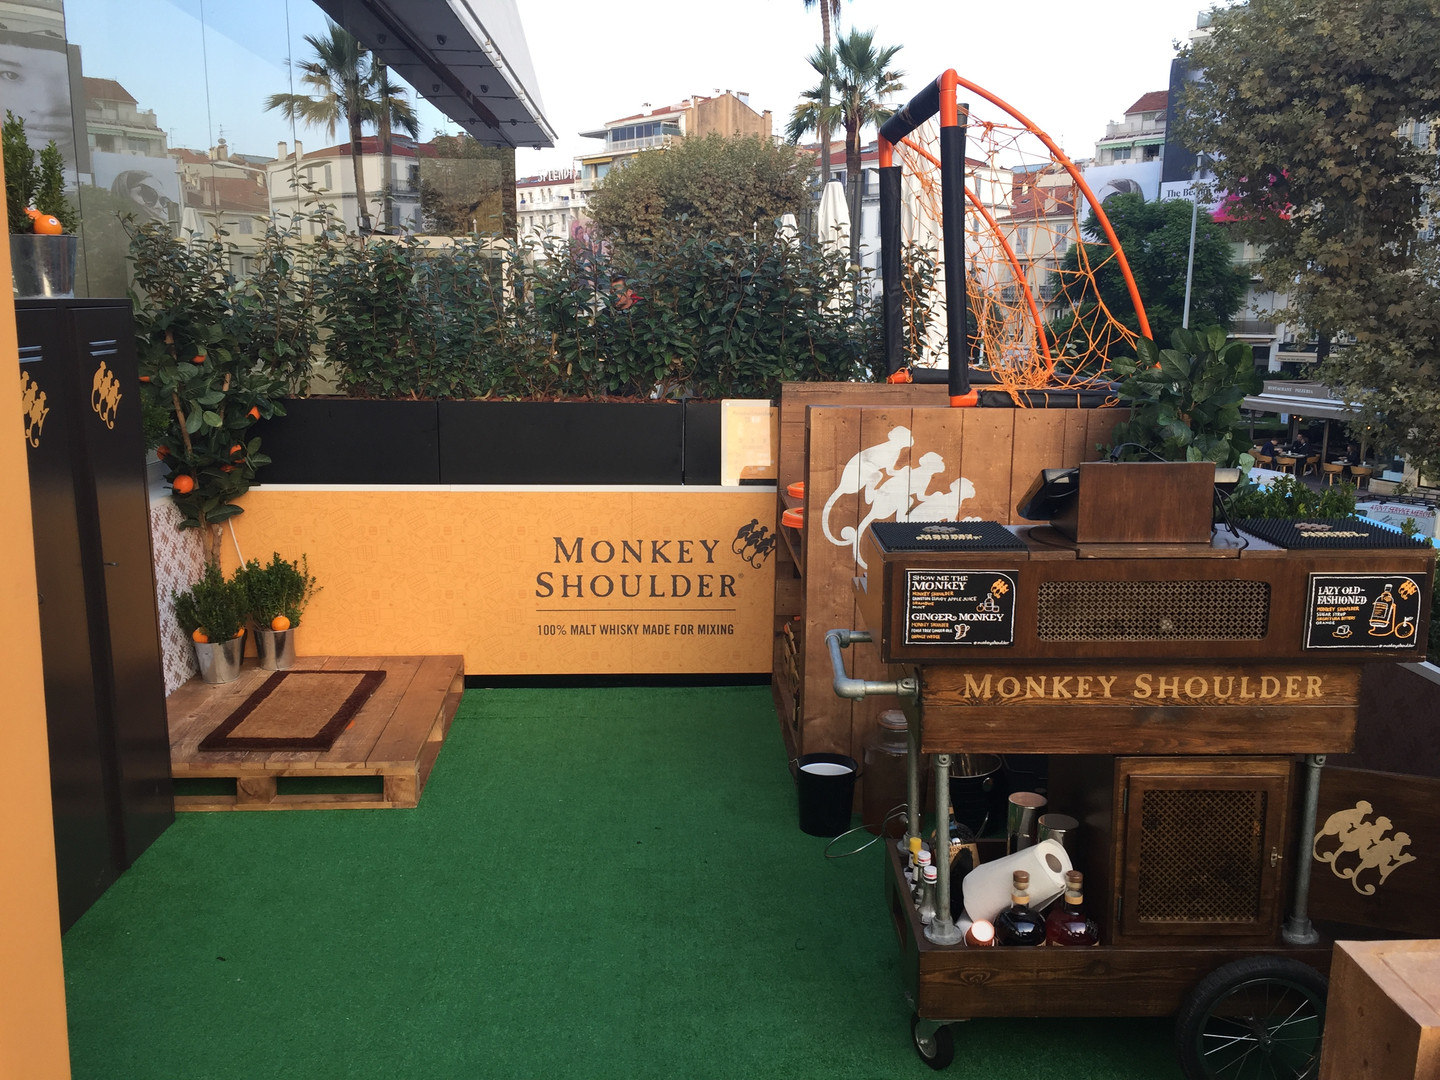 Monkey Shoulder Terrace for William Grant & Sons, Cannes.